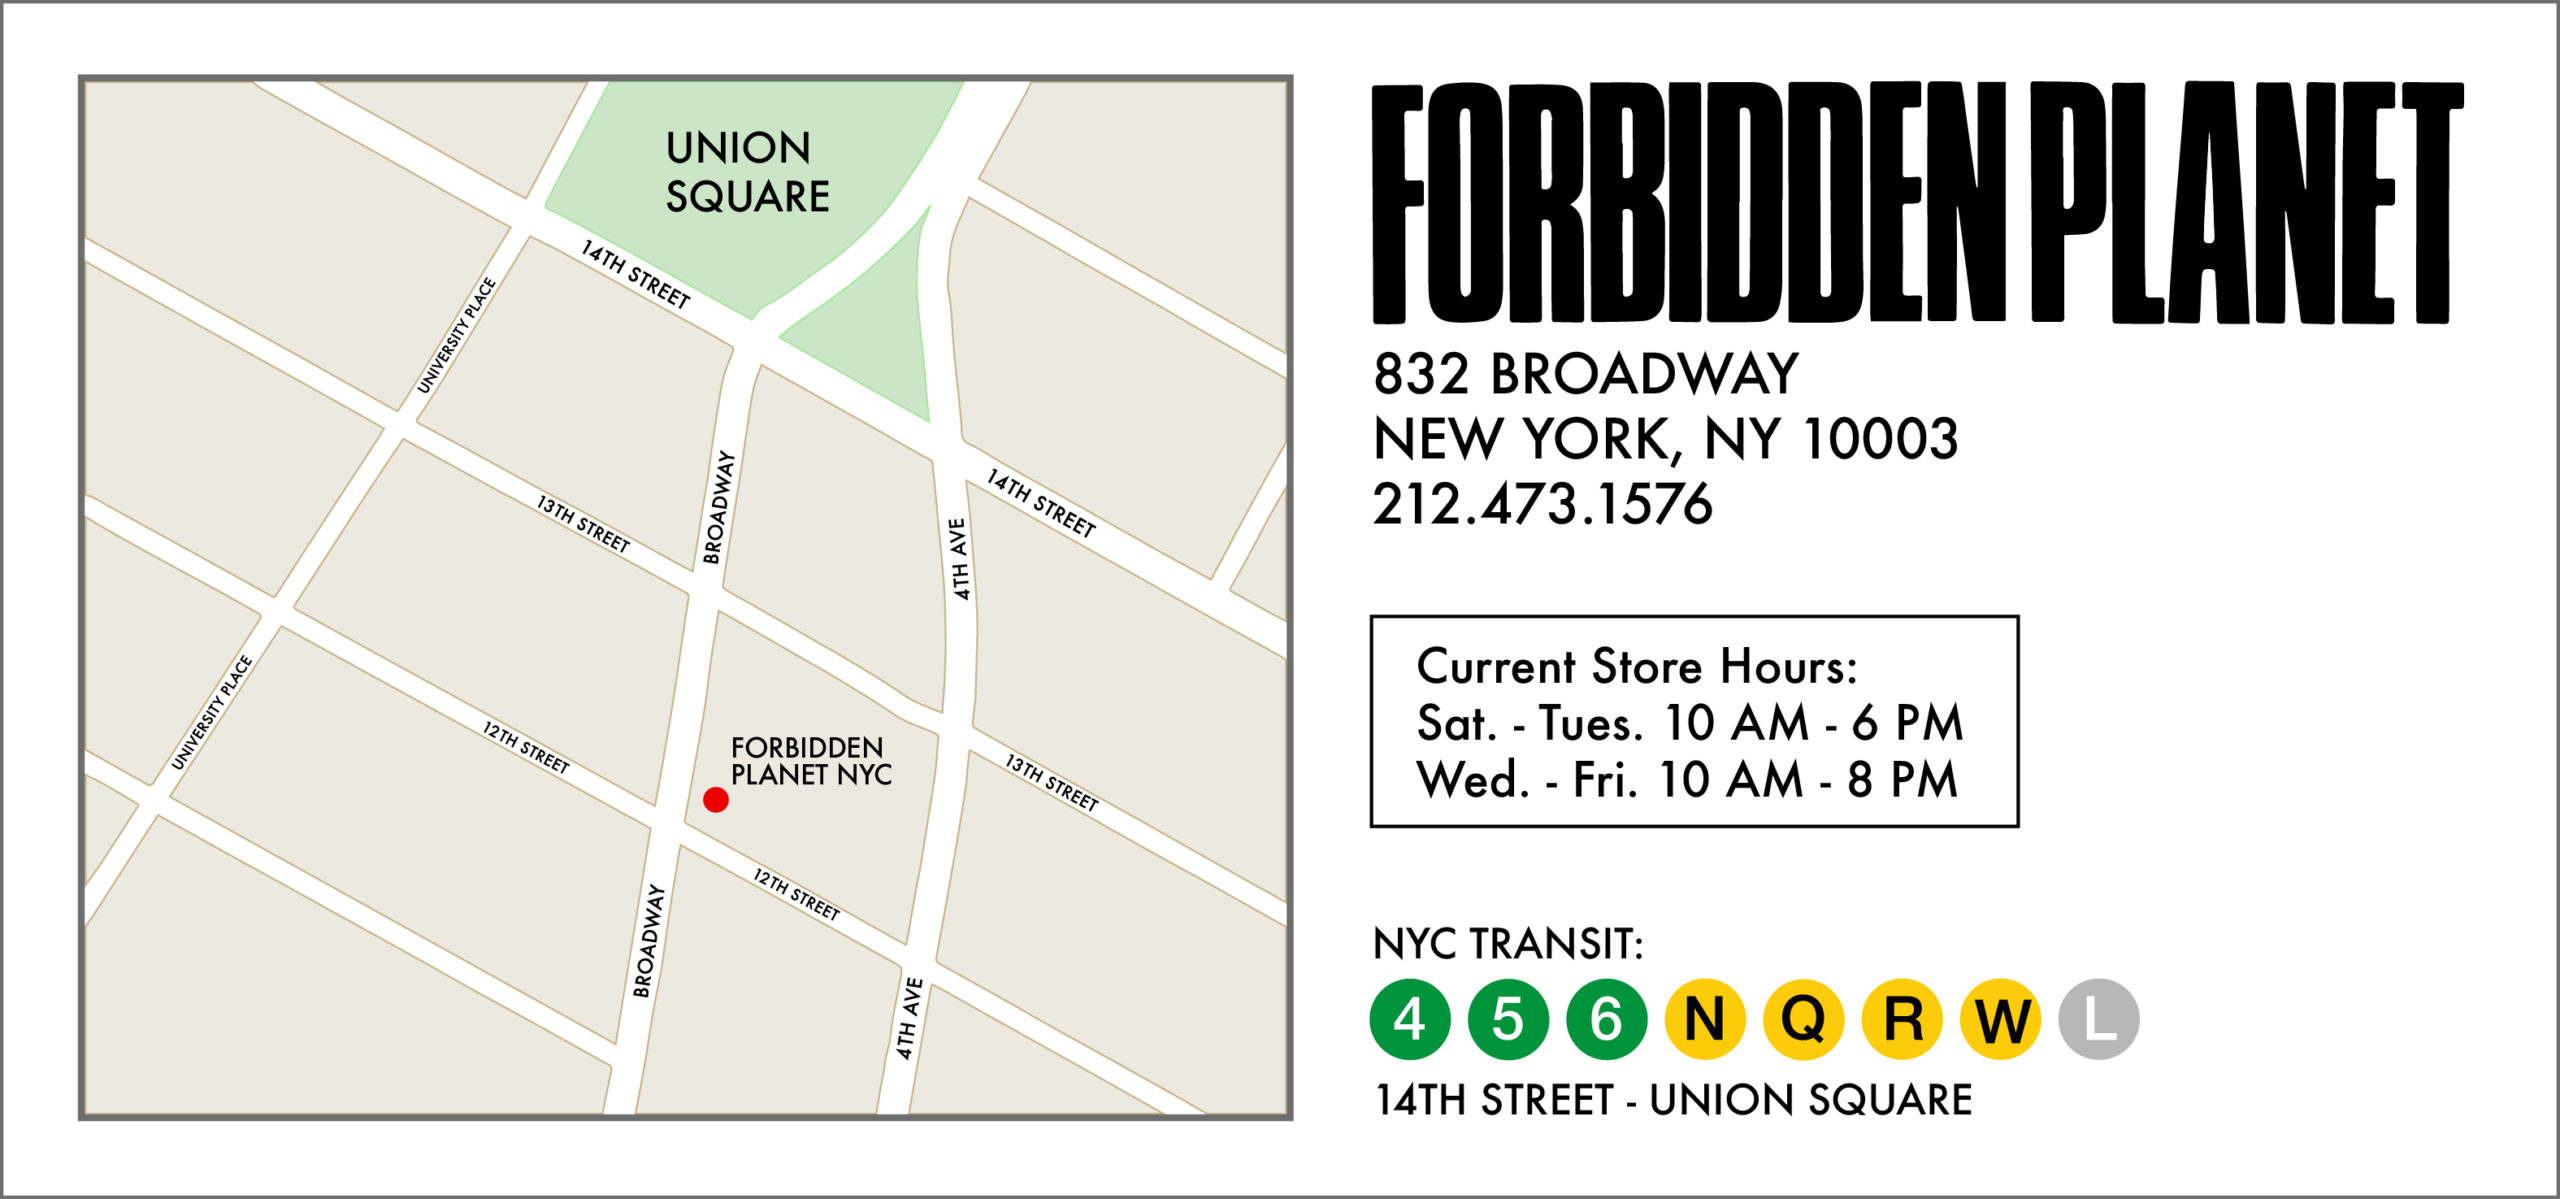 Forbidden Planet NYC Map Location and Current Store Hours